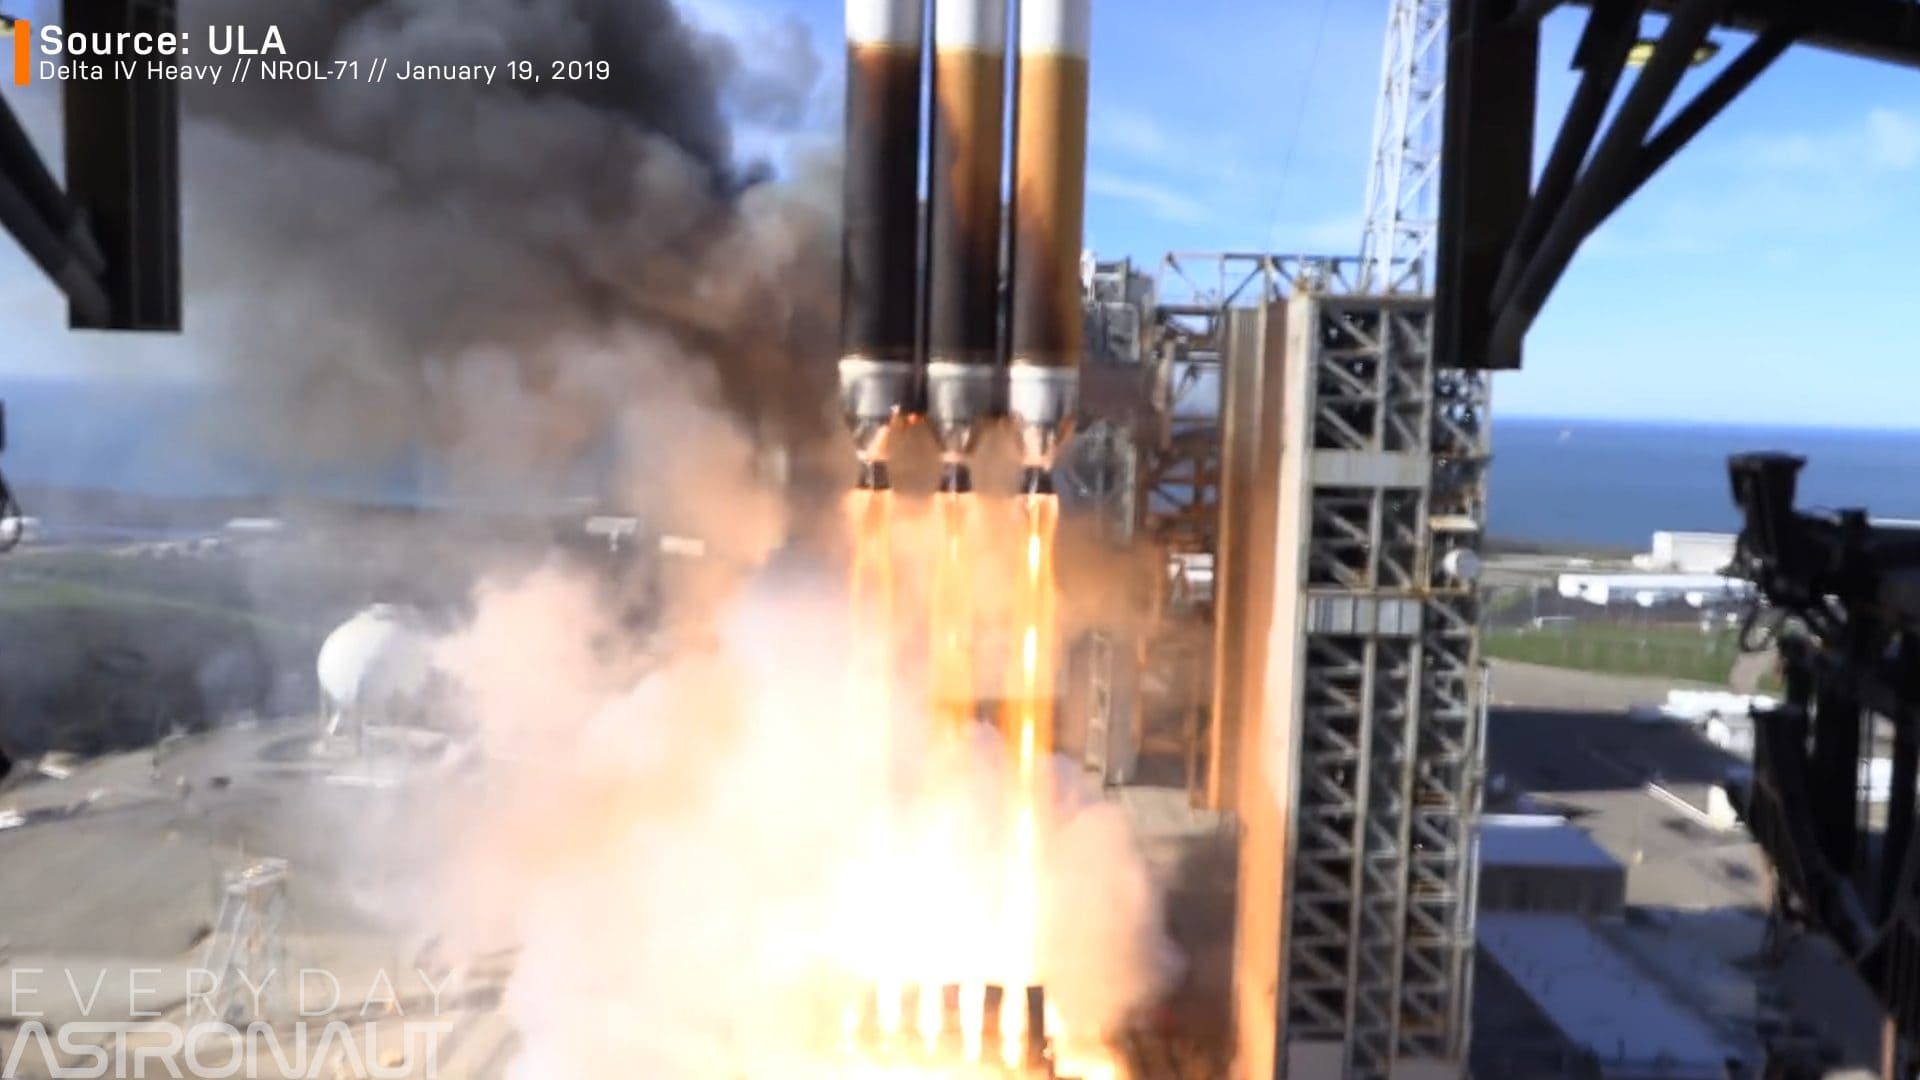 Delta IV Heavy ablative cooling